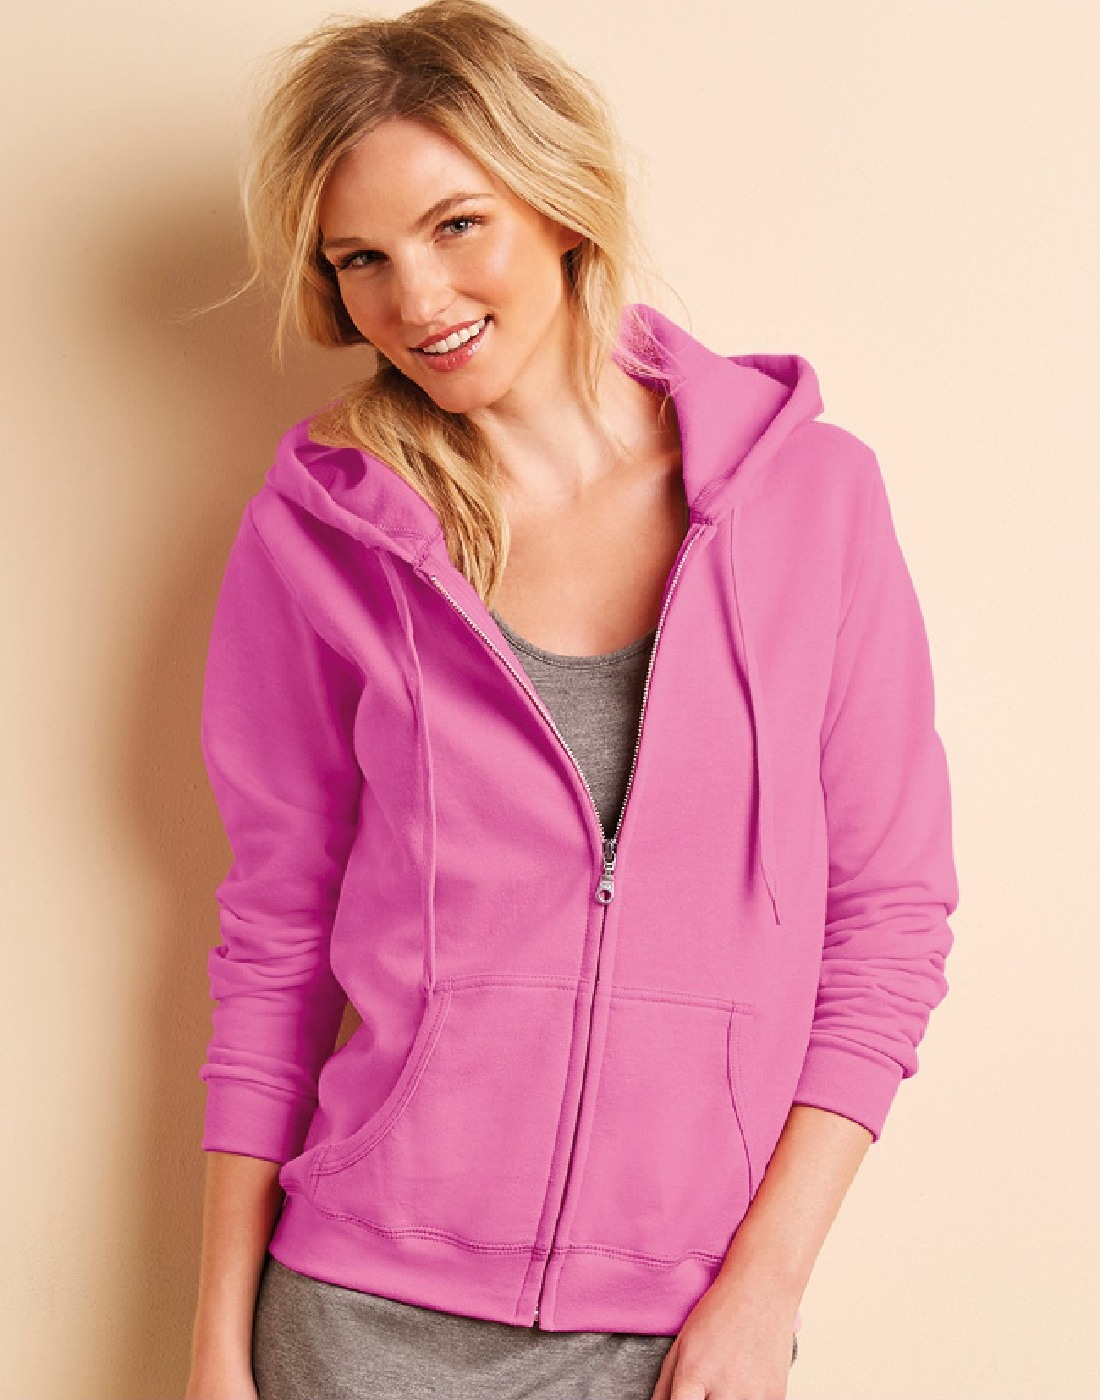 Ladies Zipped Hoodie. Fruit of the Loom